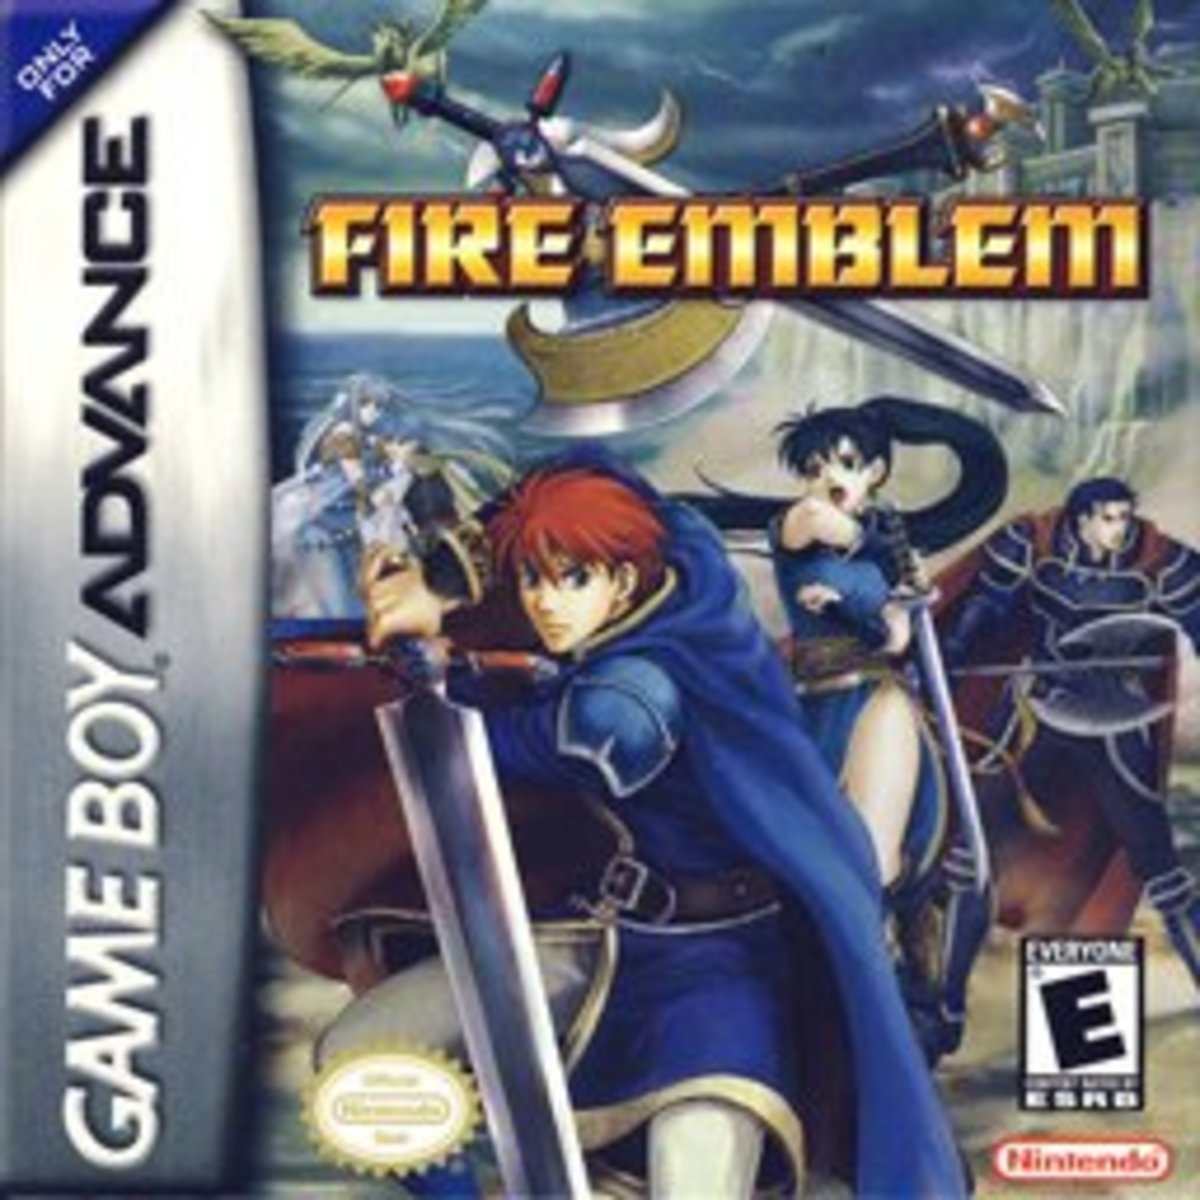 Boxart of the first localized Fire Emblem